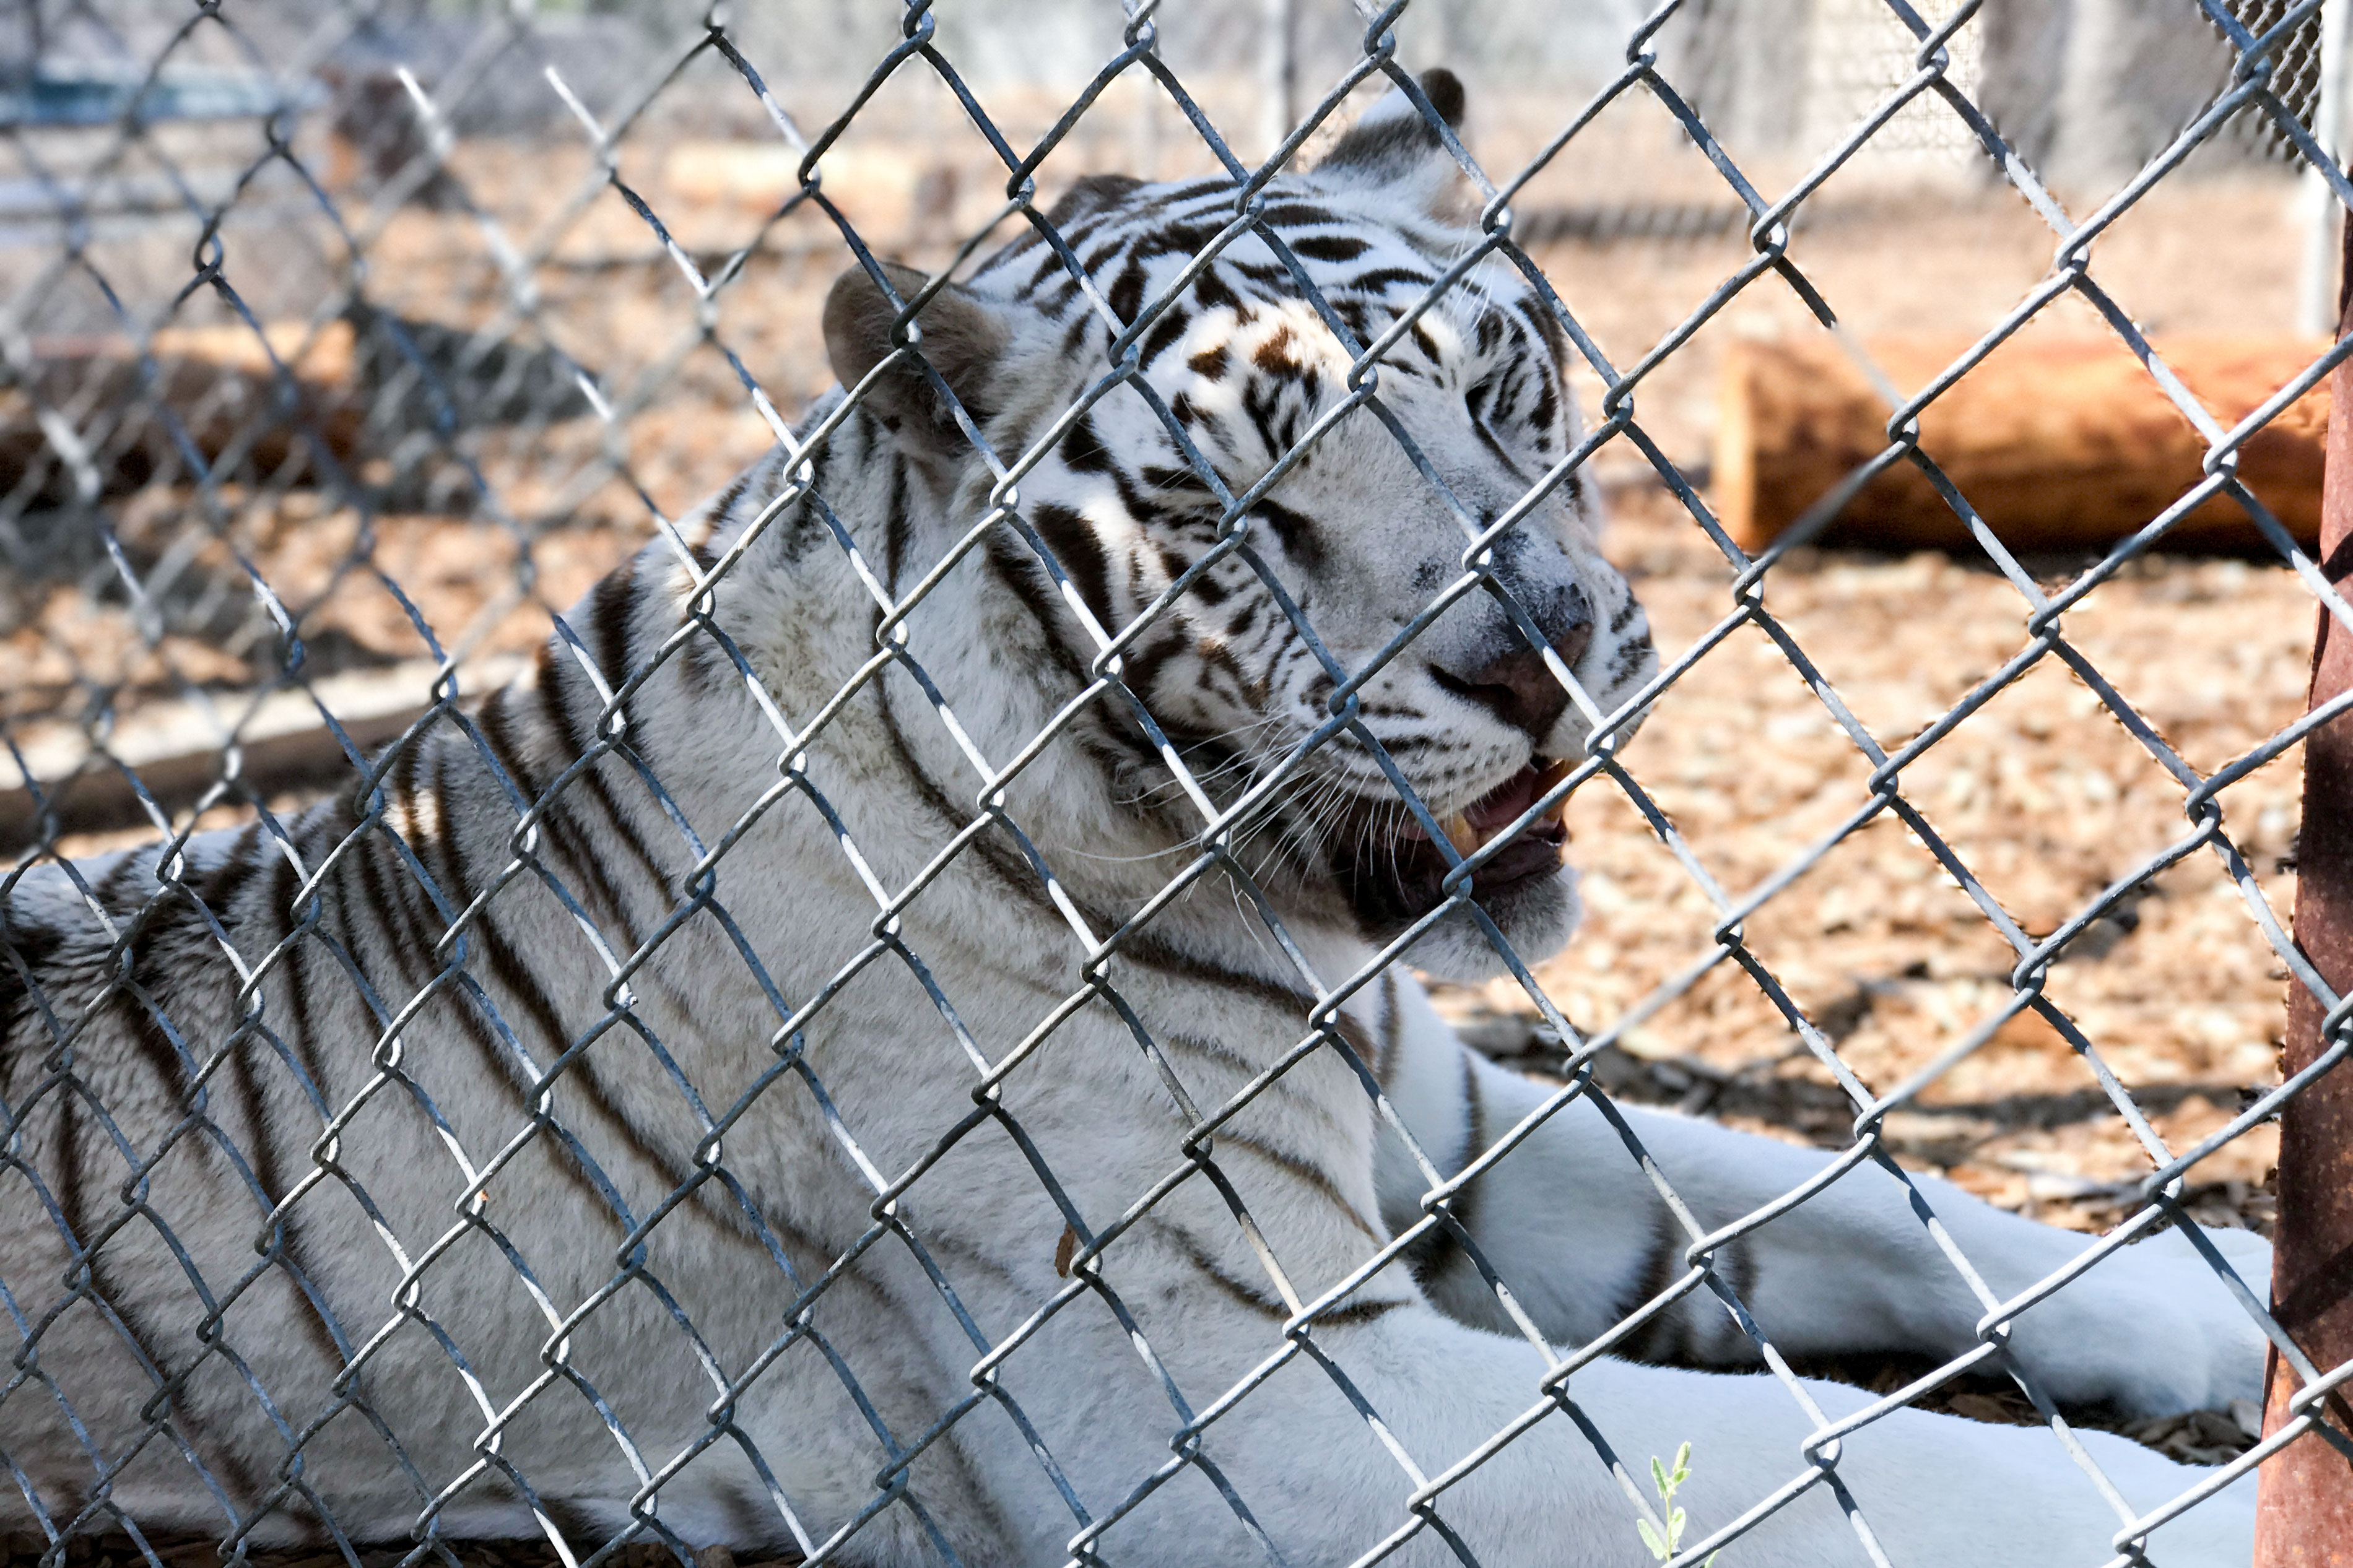 <p>A male white tiger lounges in an enclosure at the Wild Animal Sanctuary. He'll eventually live on acres of land with other tigers.</p>